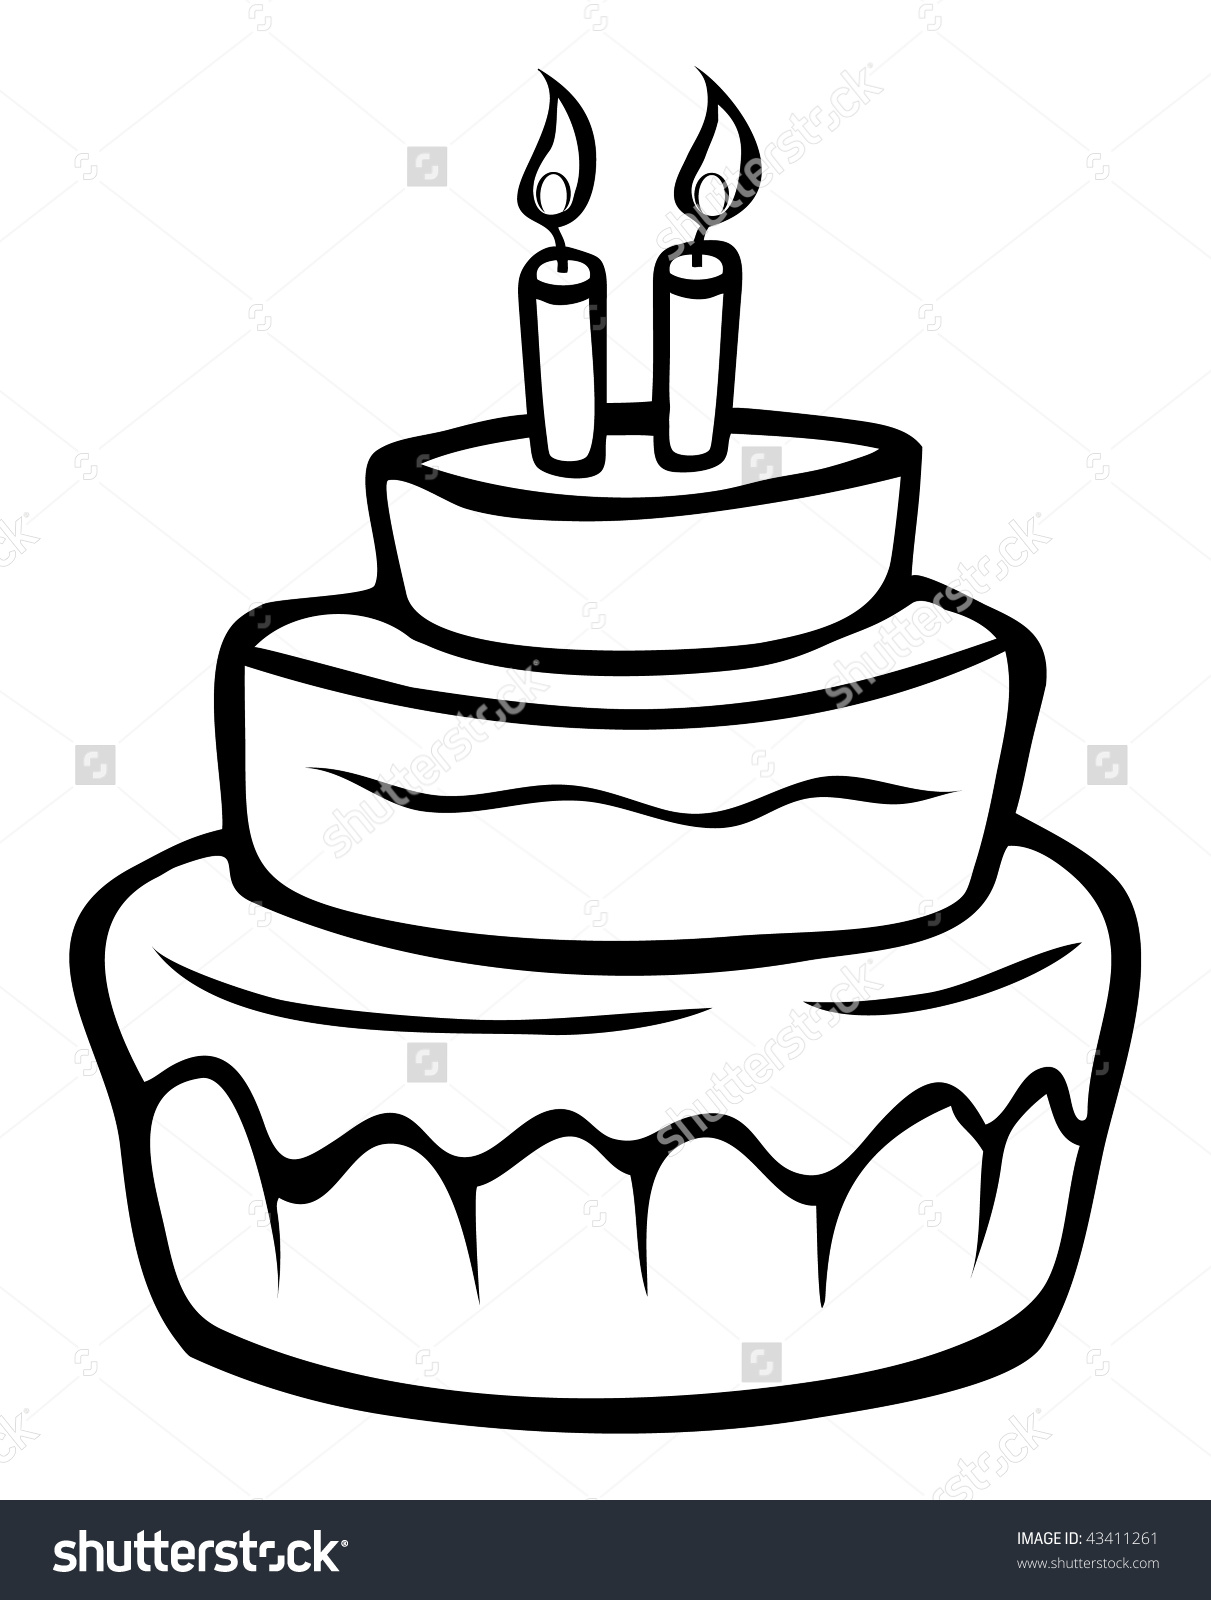 easy birthday cake drawing ; sensational-ideas-birthday-cake-outline-cartoon-image-inspiration-of-and-printable-clip-art-images-drawing